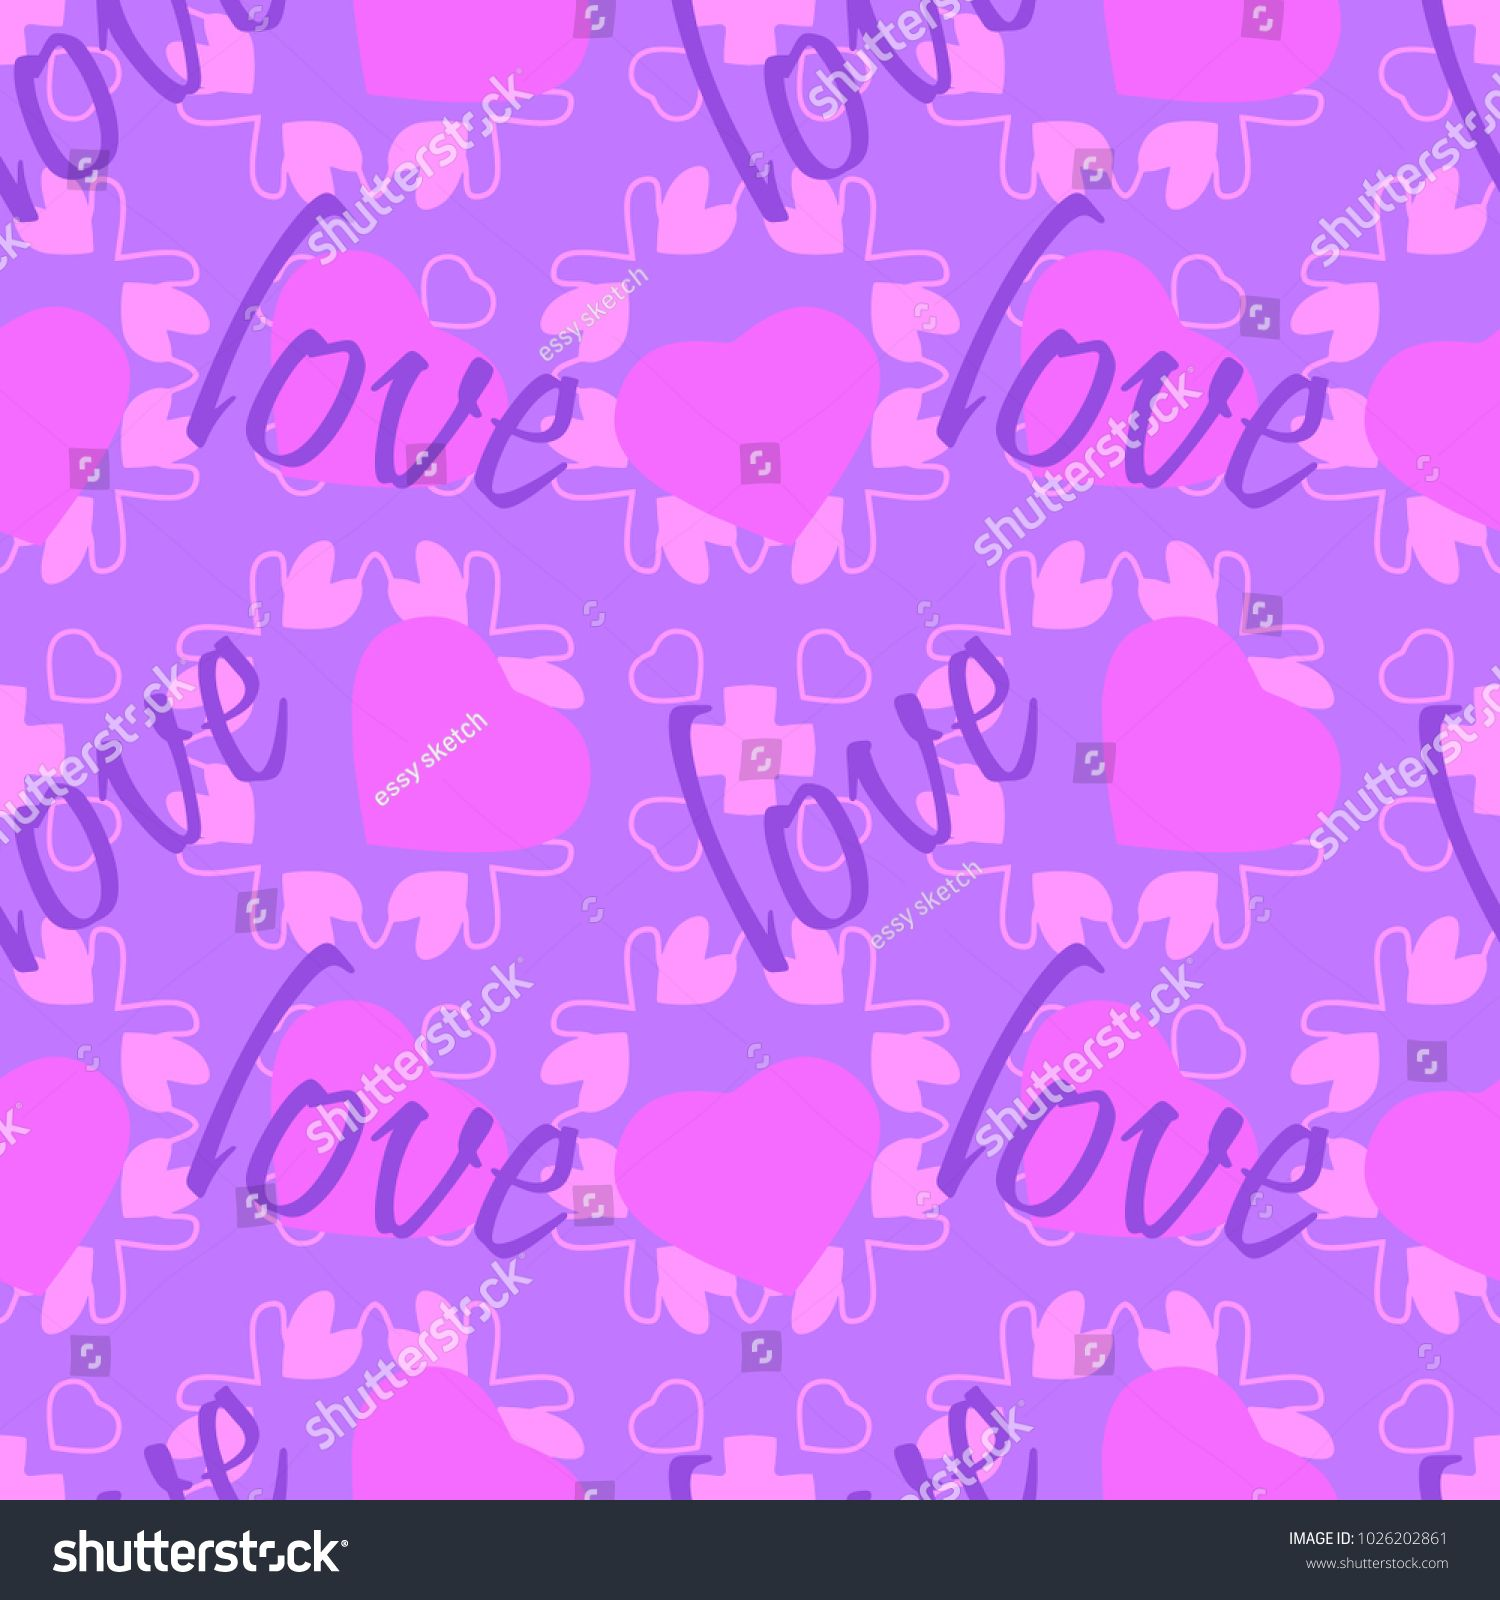 seamless pattern word love with hearts pink and purple art